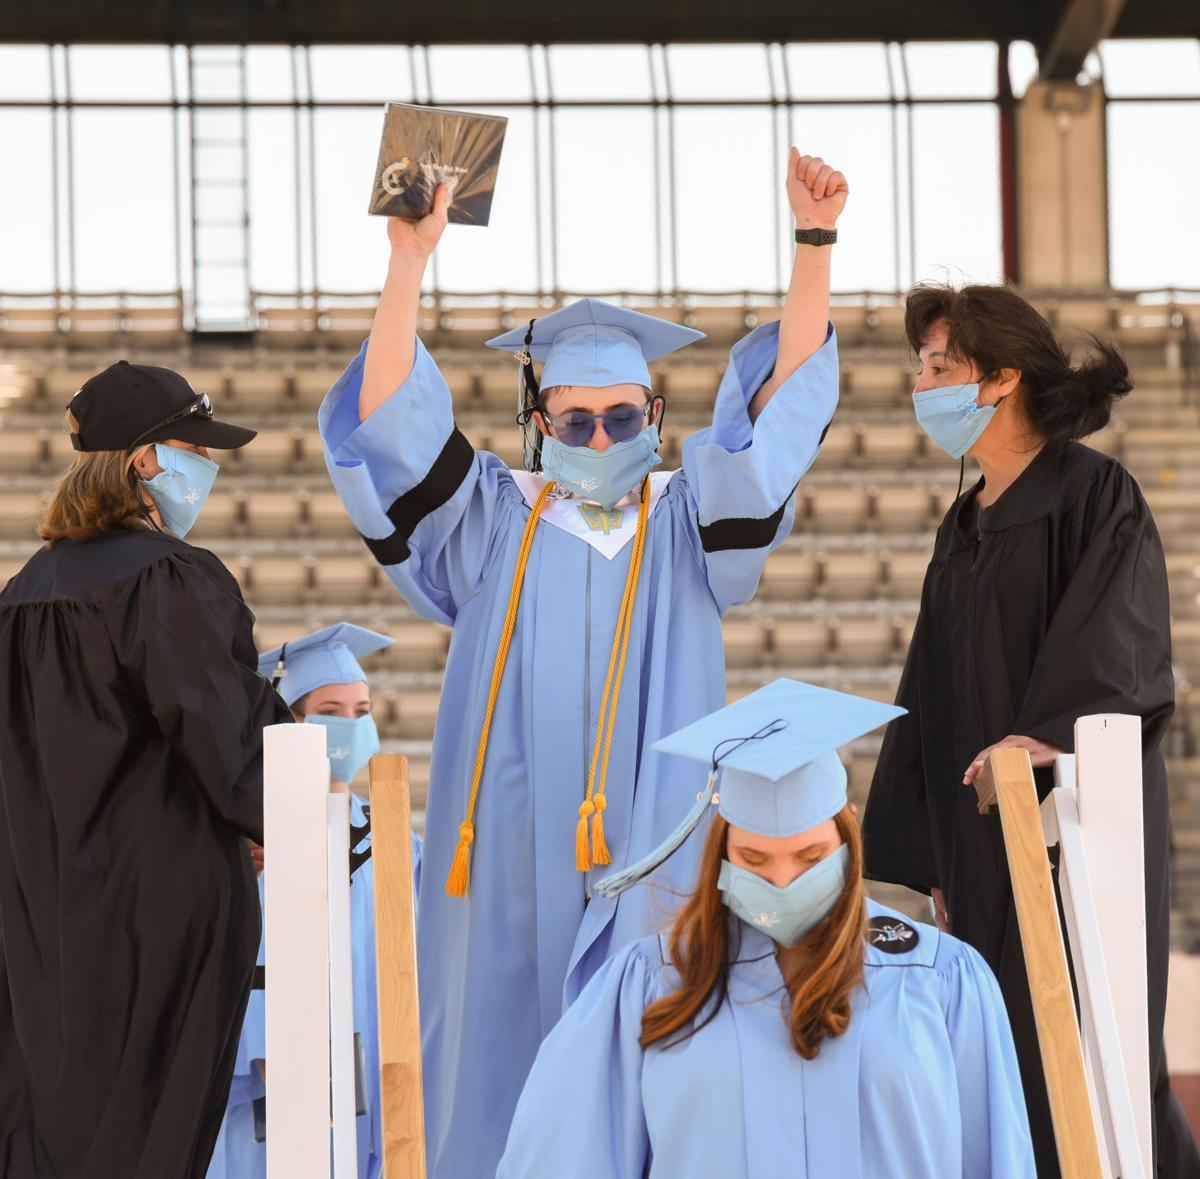 Students from Cheyenne East High School celebrate graduation 2020